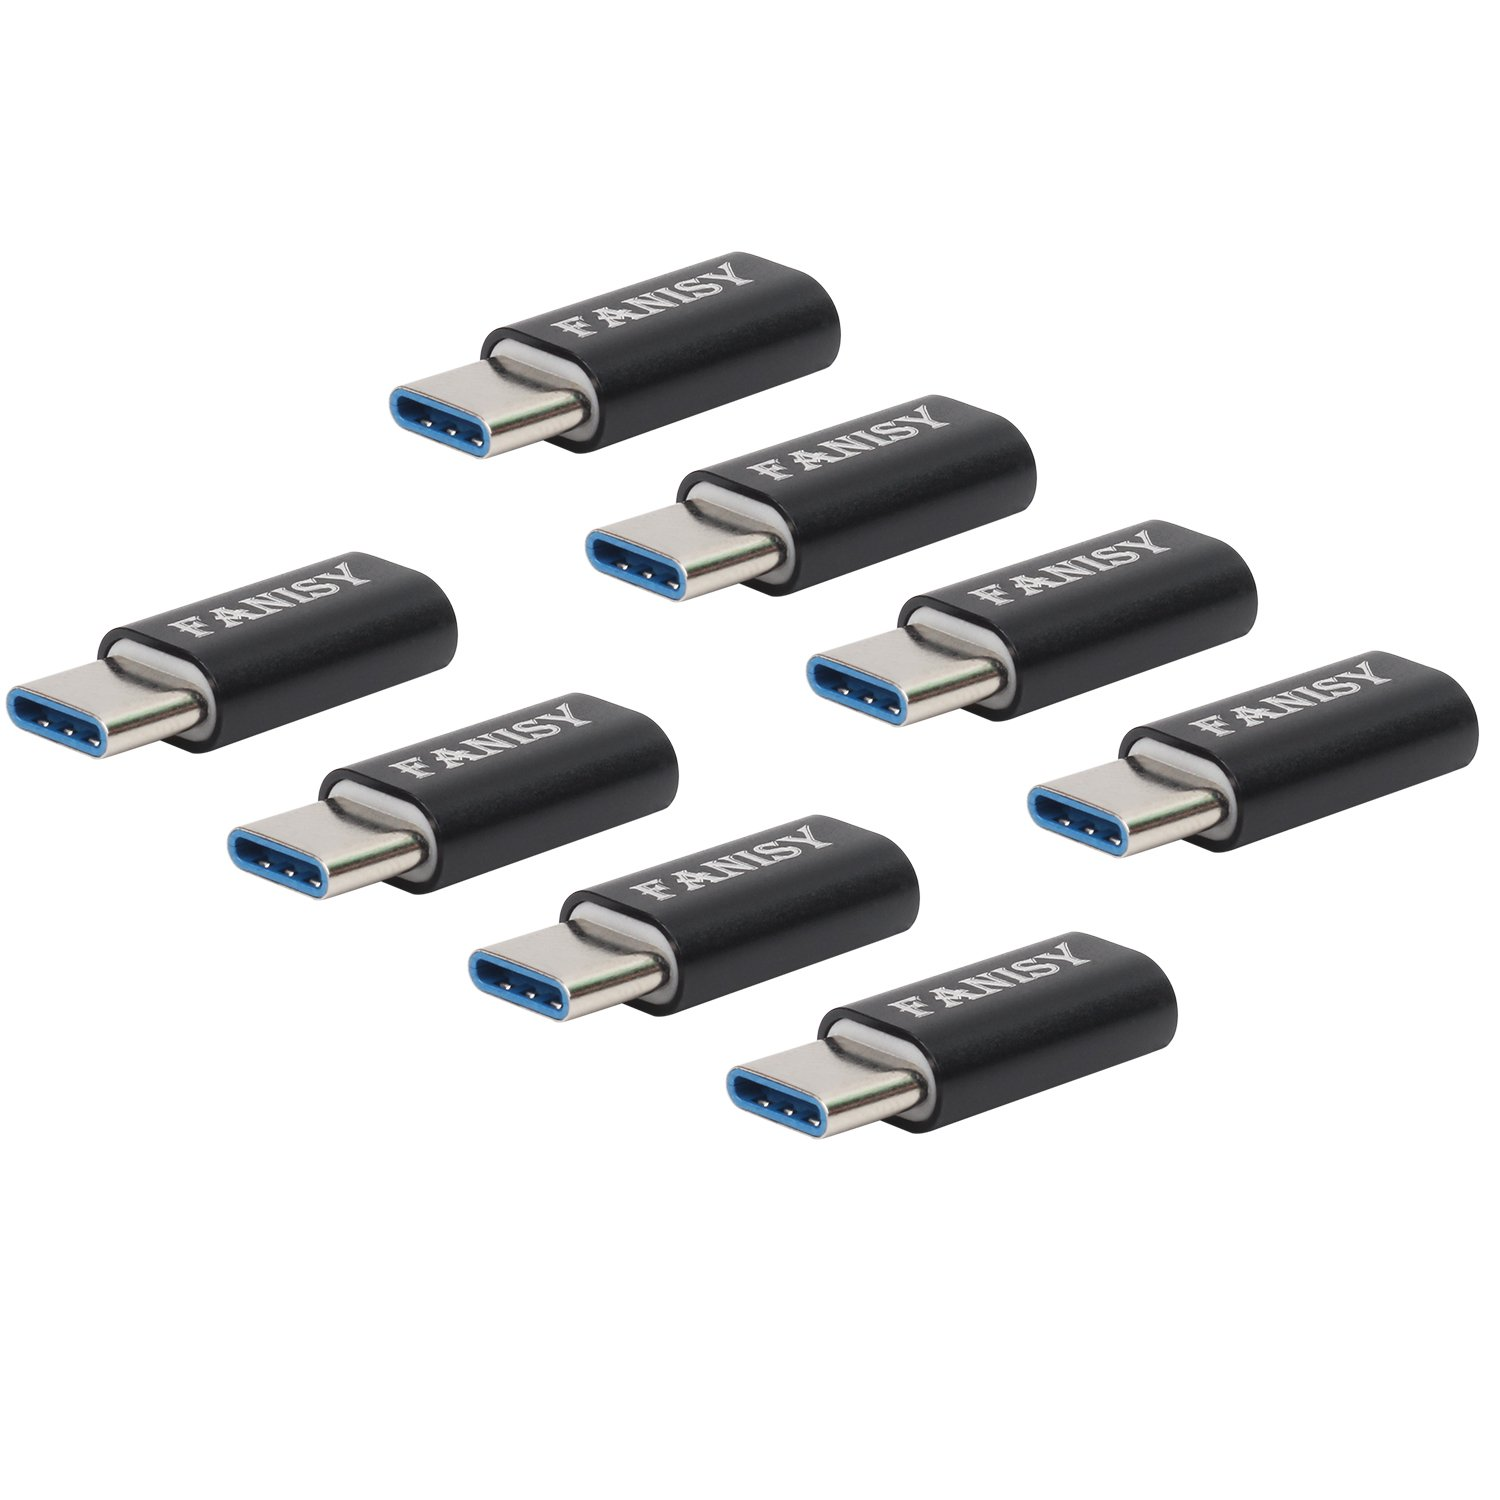 Type C Adapter[Pack of 6], FANISY Micro USB to USB-C Adapter, USB-C to USB-A 3.0 Adapter, Data Sync and Charge for Samsung S8 S8Pluas,MacBook,ChromeBookPixel,Nexus 5X/6P and Other Type C Devices-Black